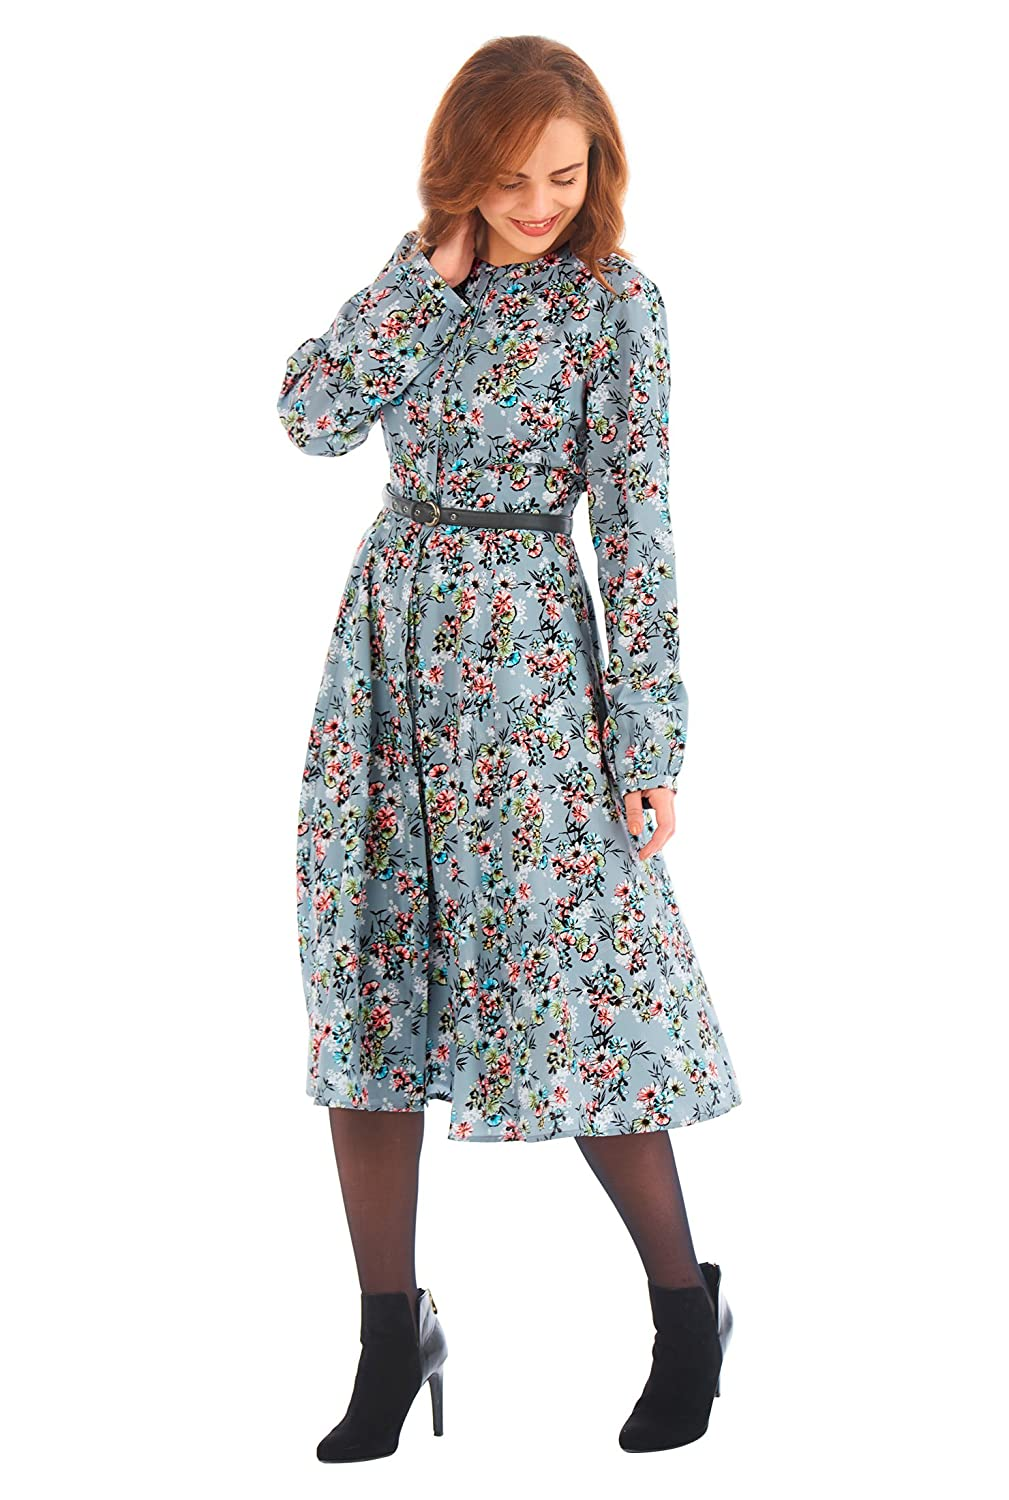 1940s Style Dresses and Clothing eShakti Womens Floral print crepe belted shirtdress $73.95 AT vintagedancer.com